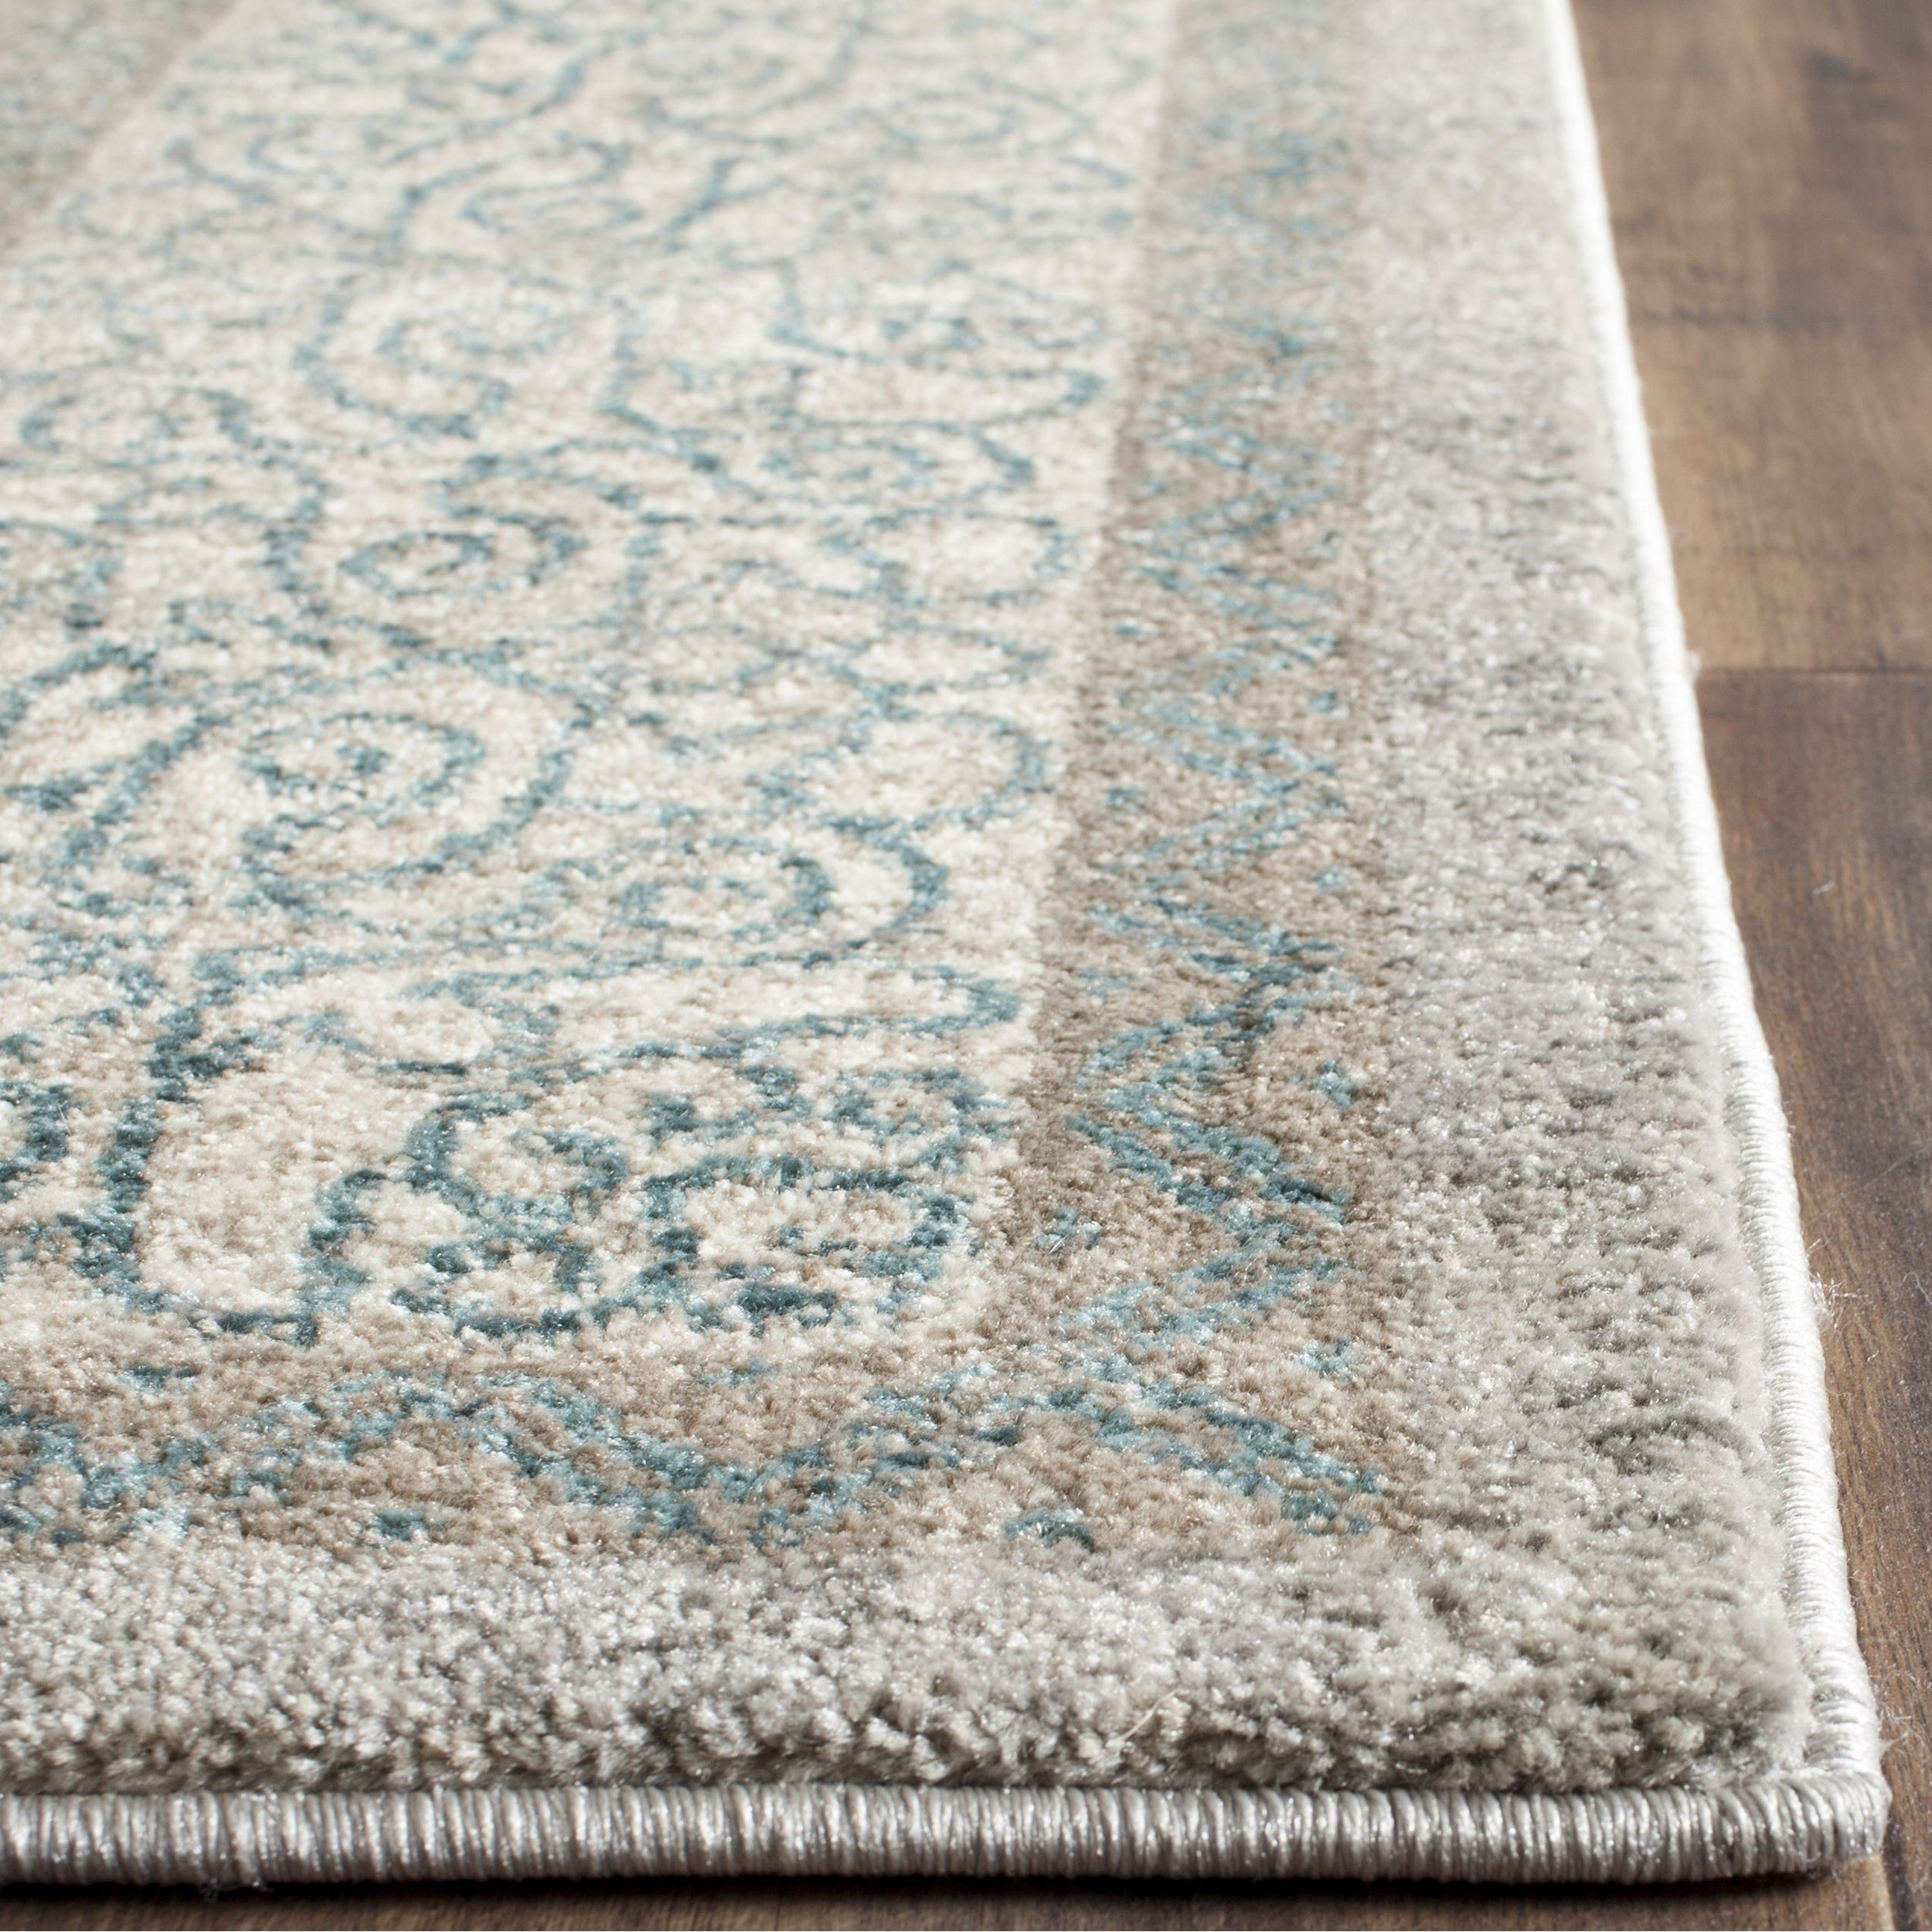 useful image works carpet stock as photo background light for gray design texture